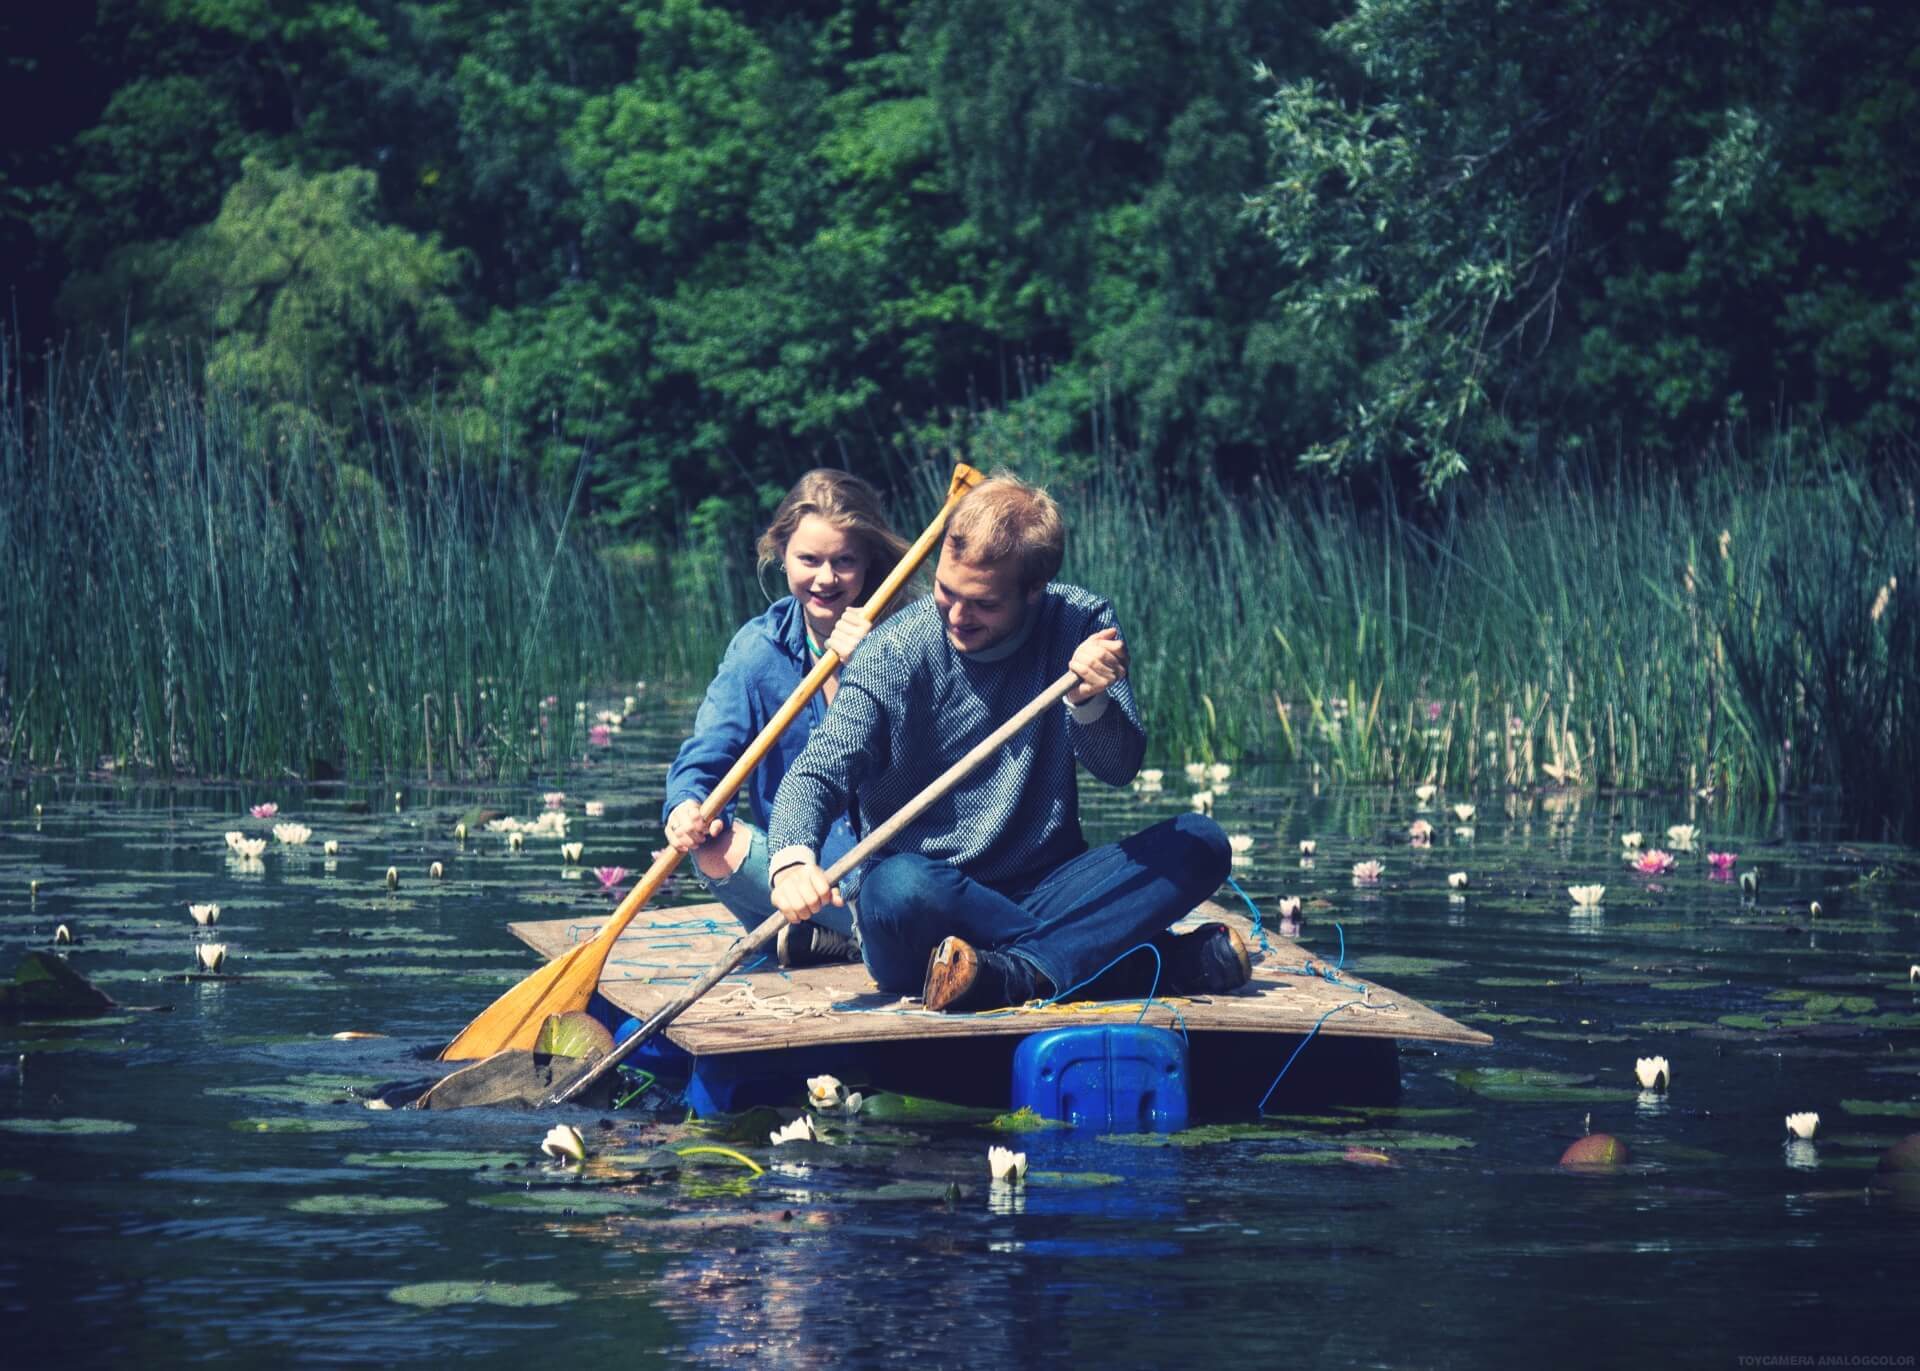 Paddling on the lake - Folk high school Leisure time activities in Denmark at International People's College